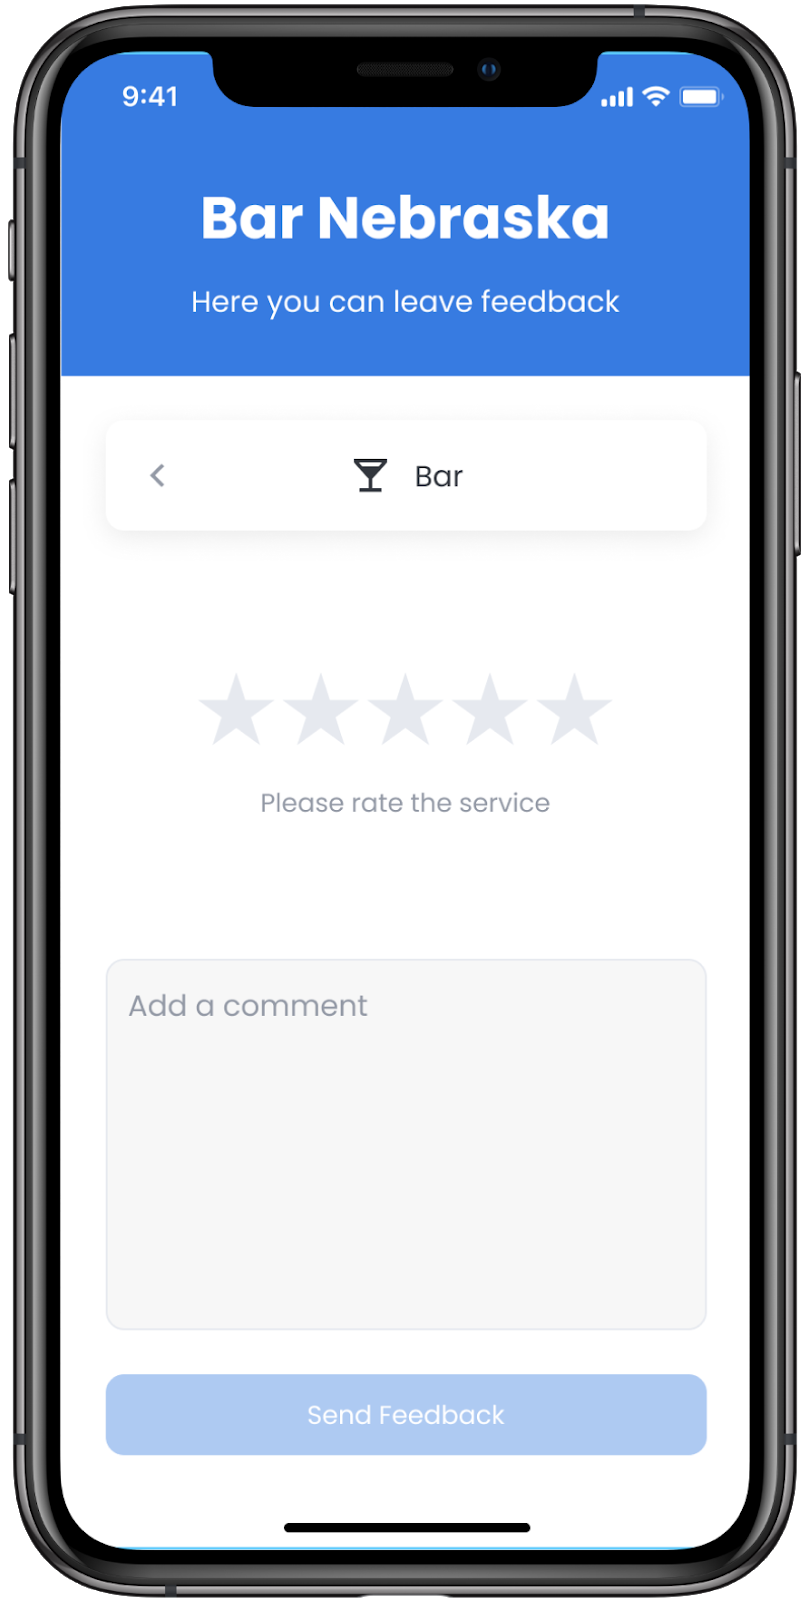 Mobile online feedback form for a bar with star rating and section for comments